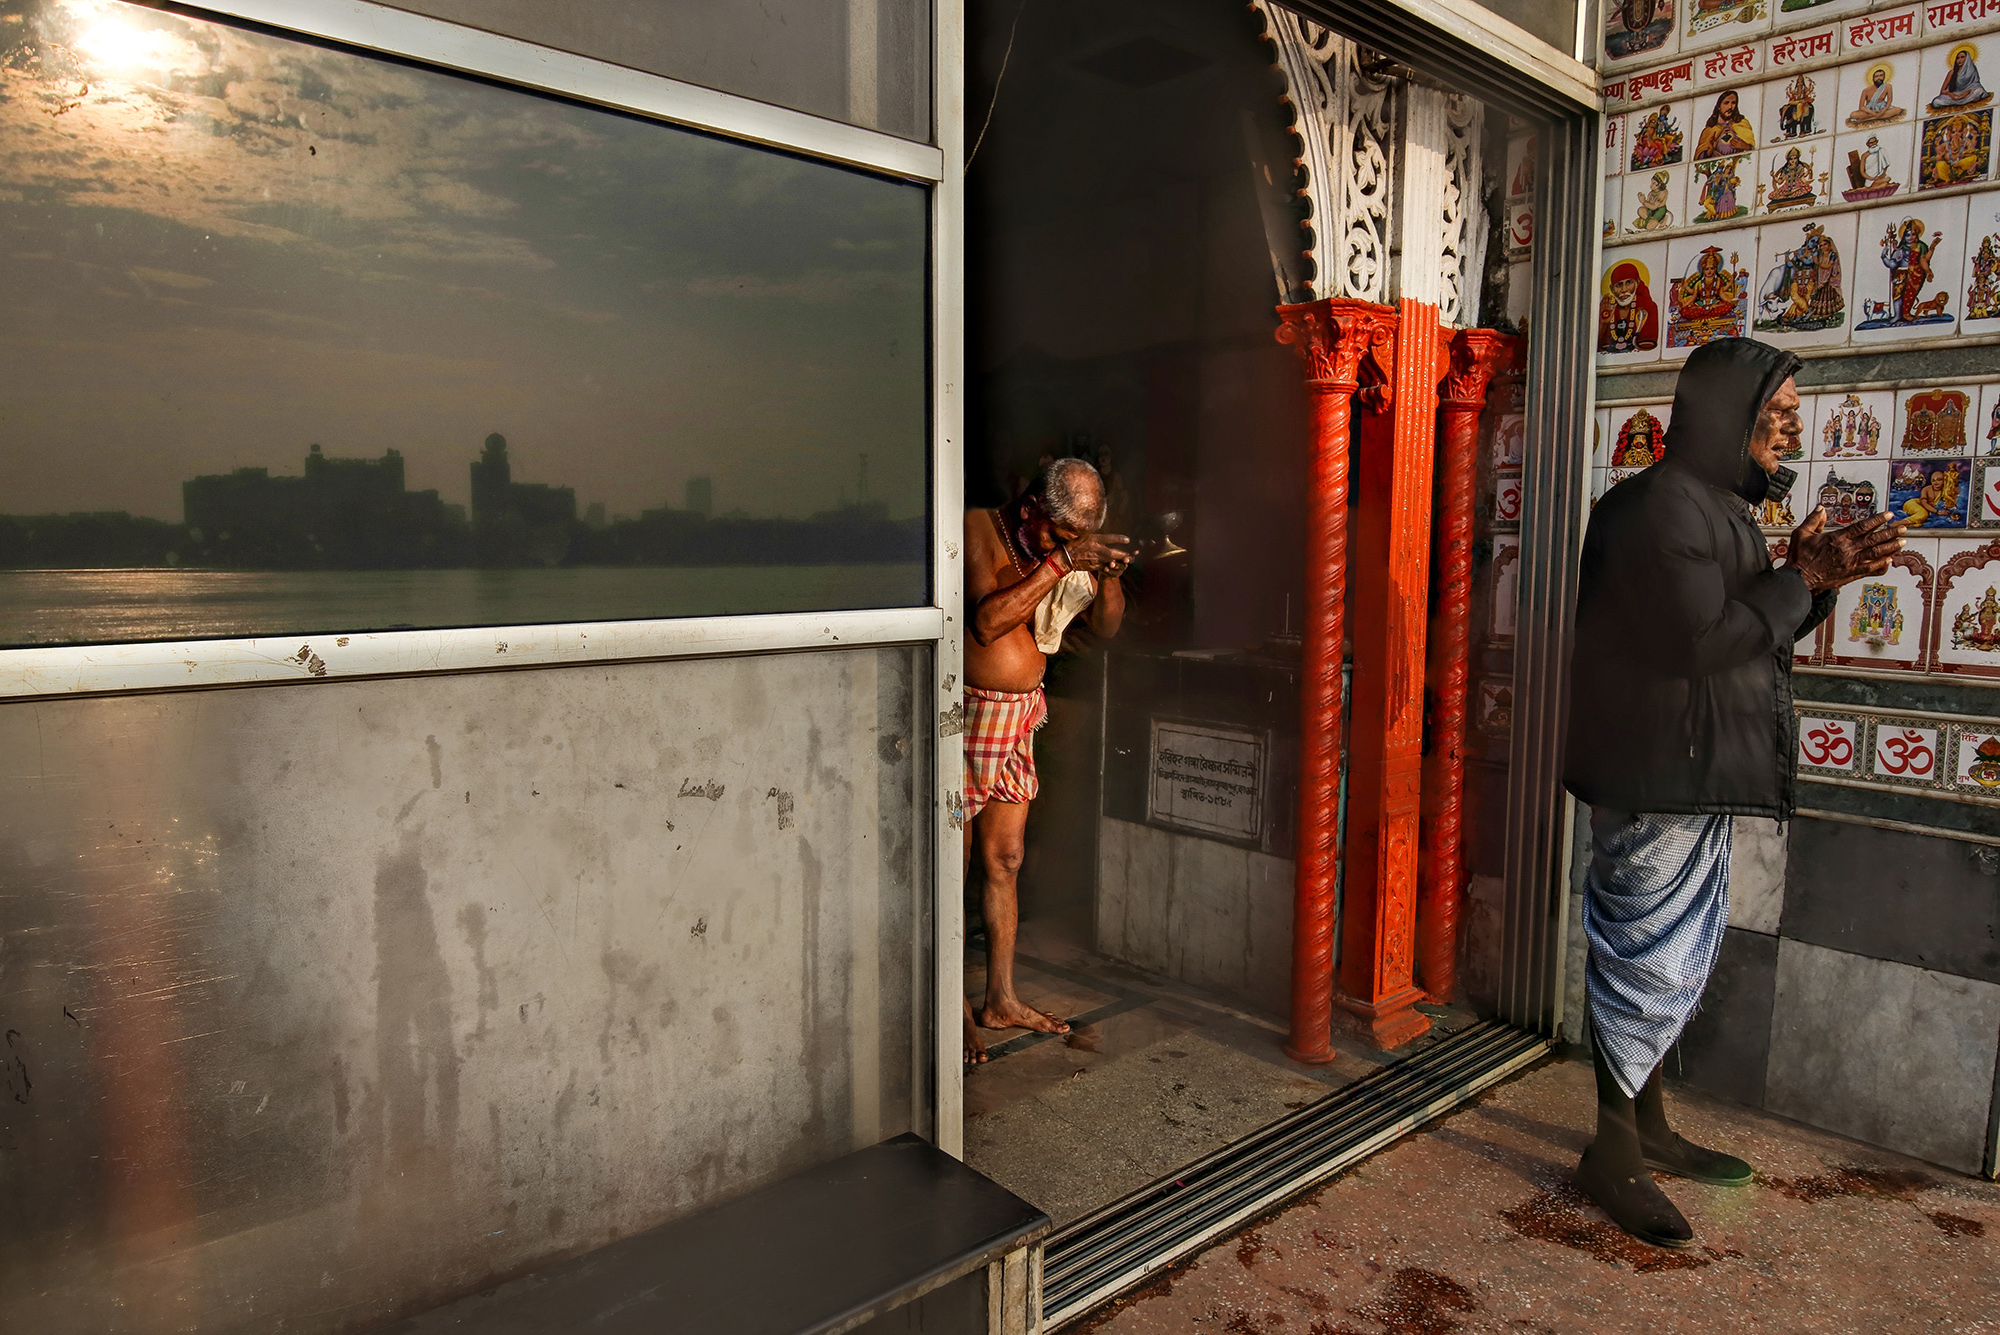 The first sunrise of 2018 was like this from Bengal.This is a ritual, people of this city do every day.This is also an affection for our city. We don't need a particular day or purpose for showing gratitude to the rising sun.  In this shot, I tried to catch the city and rising sun through the mirror and people towards it.